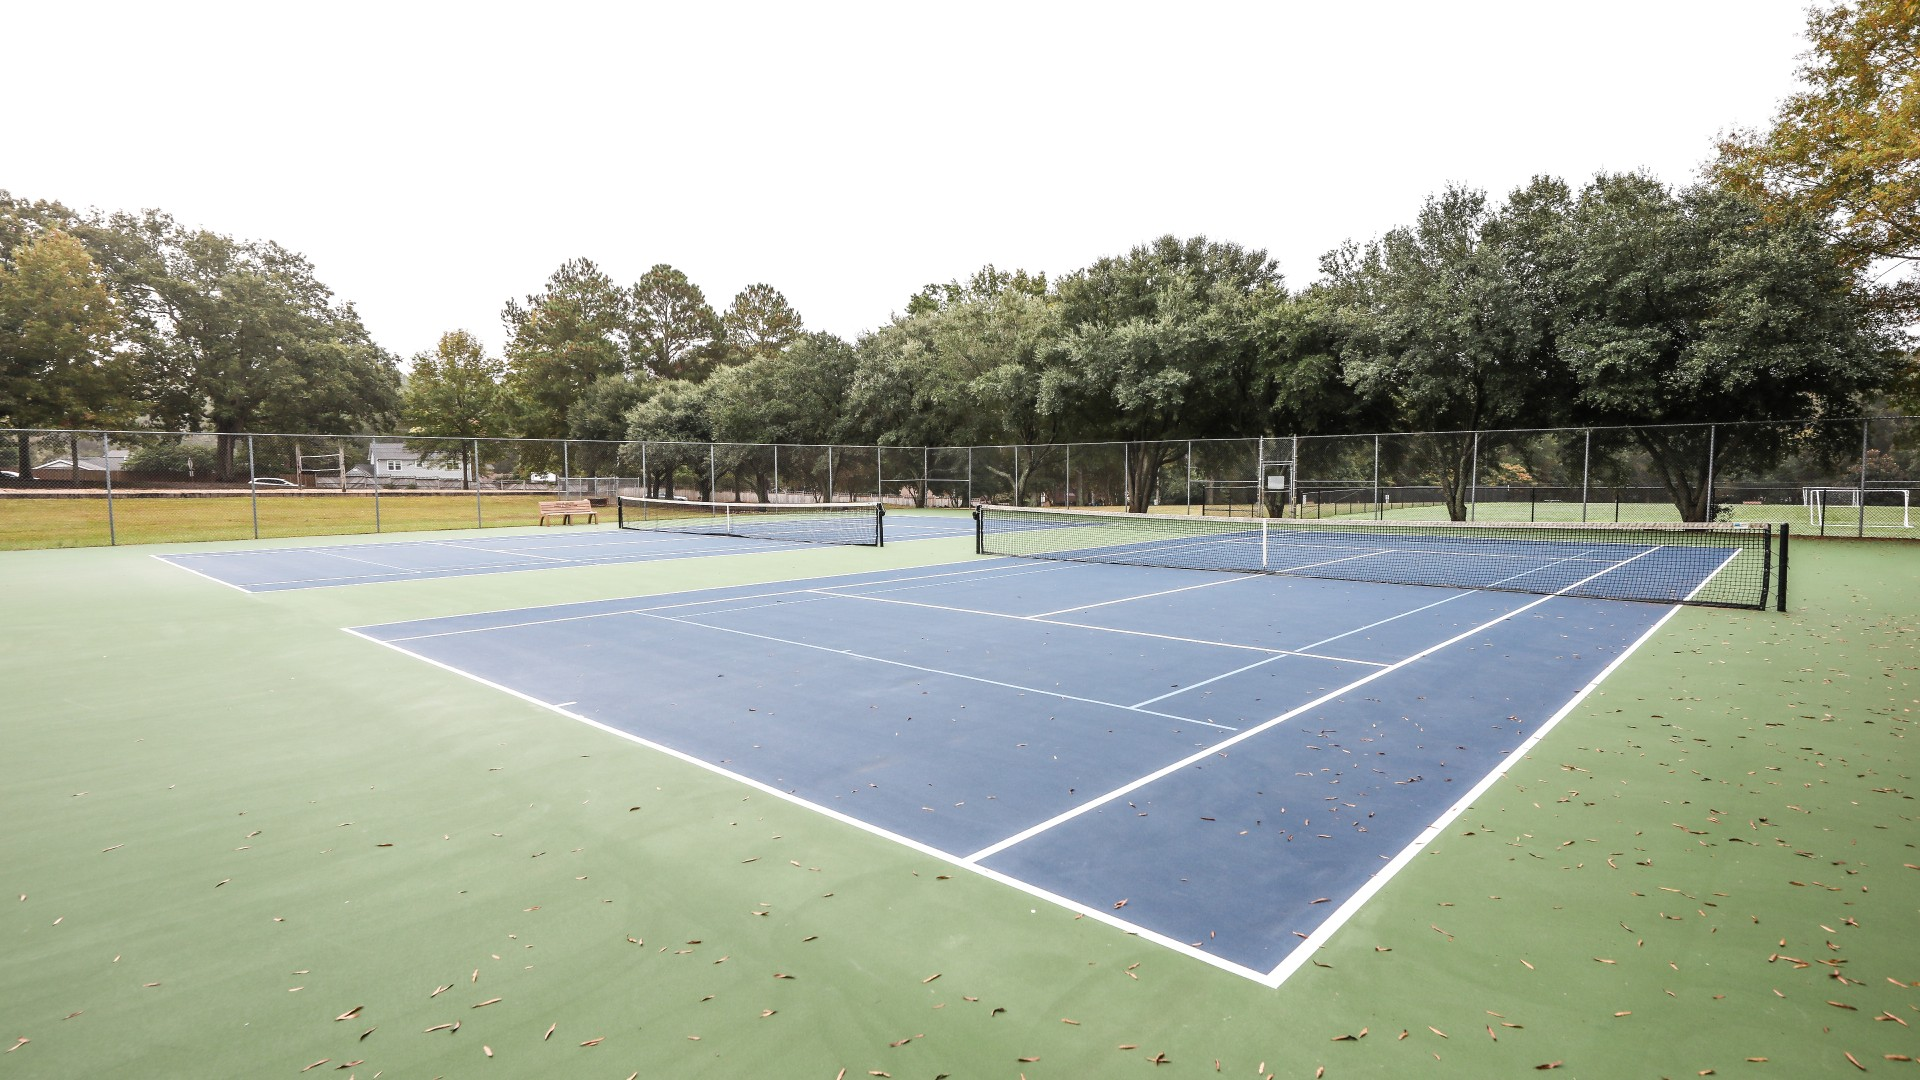 Two outdoor tennis courts at Williams Park